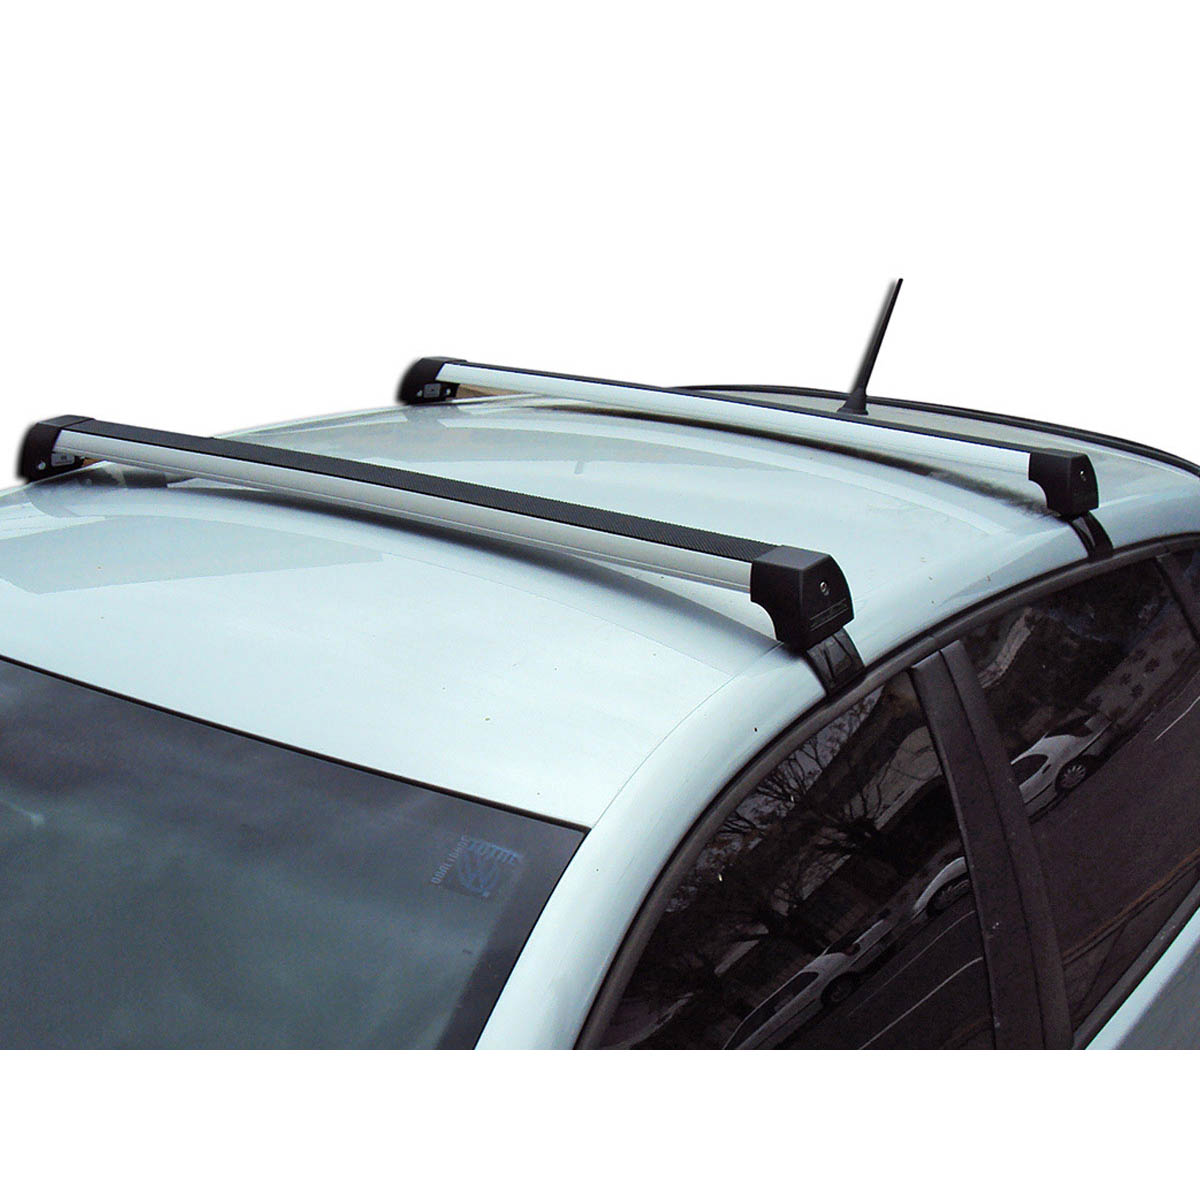 Rack de teto Cruze Sedan ou Sport6 2012 a 2016 Long Life Sports anodizado